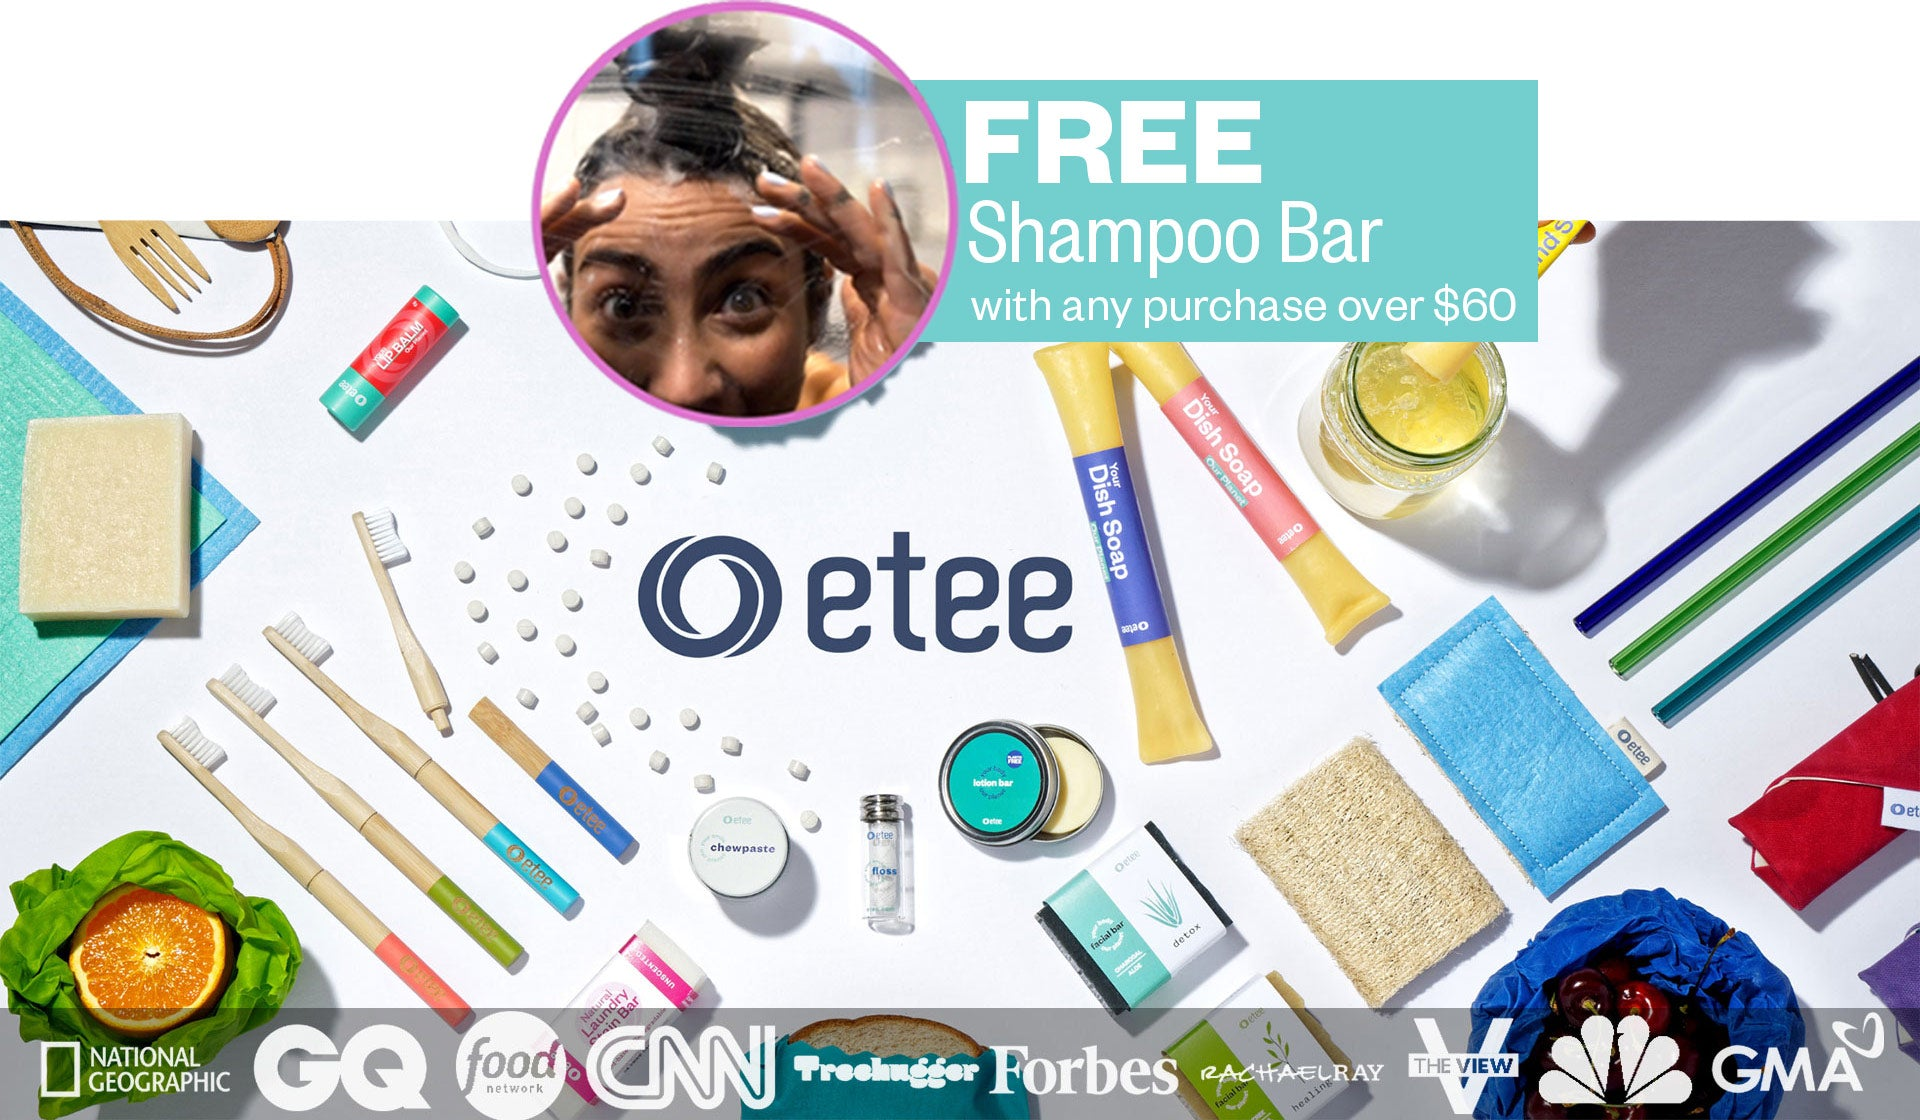 free shampoo bar with every purchase over $60